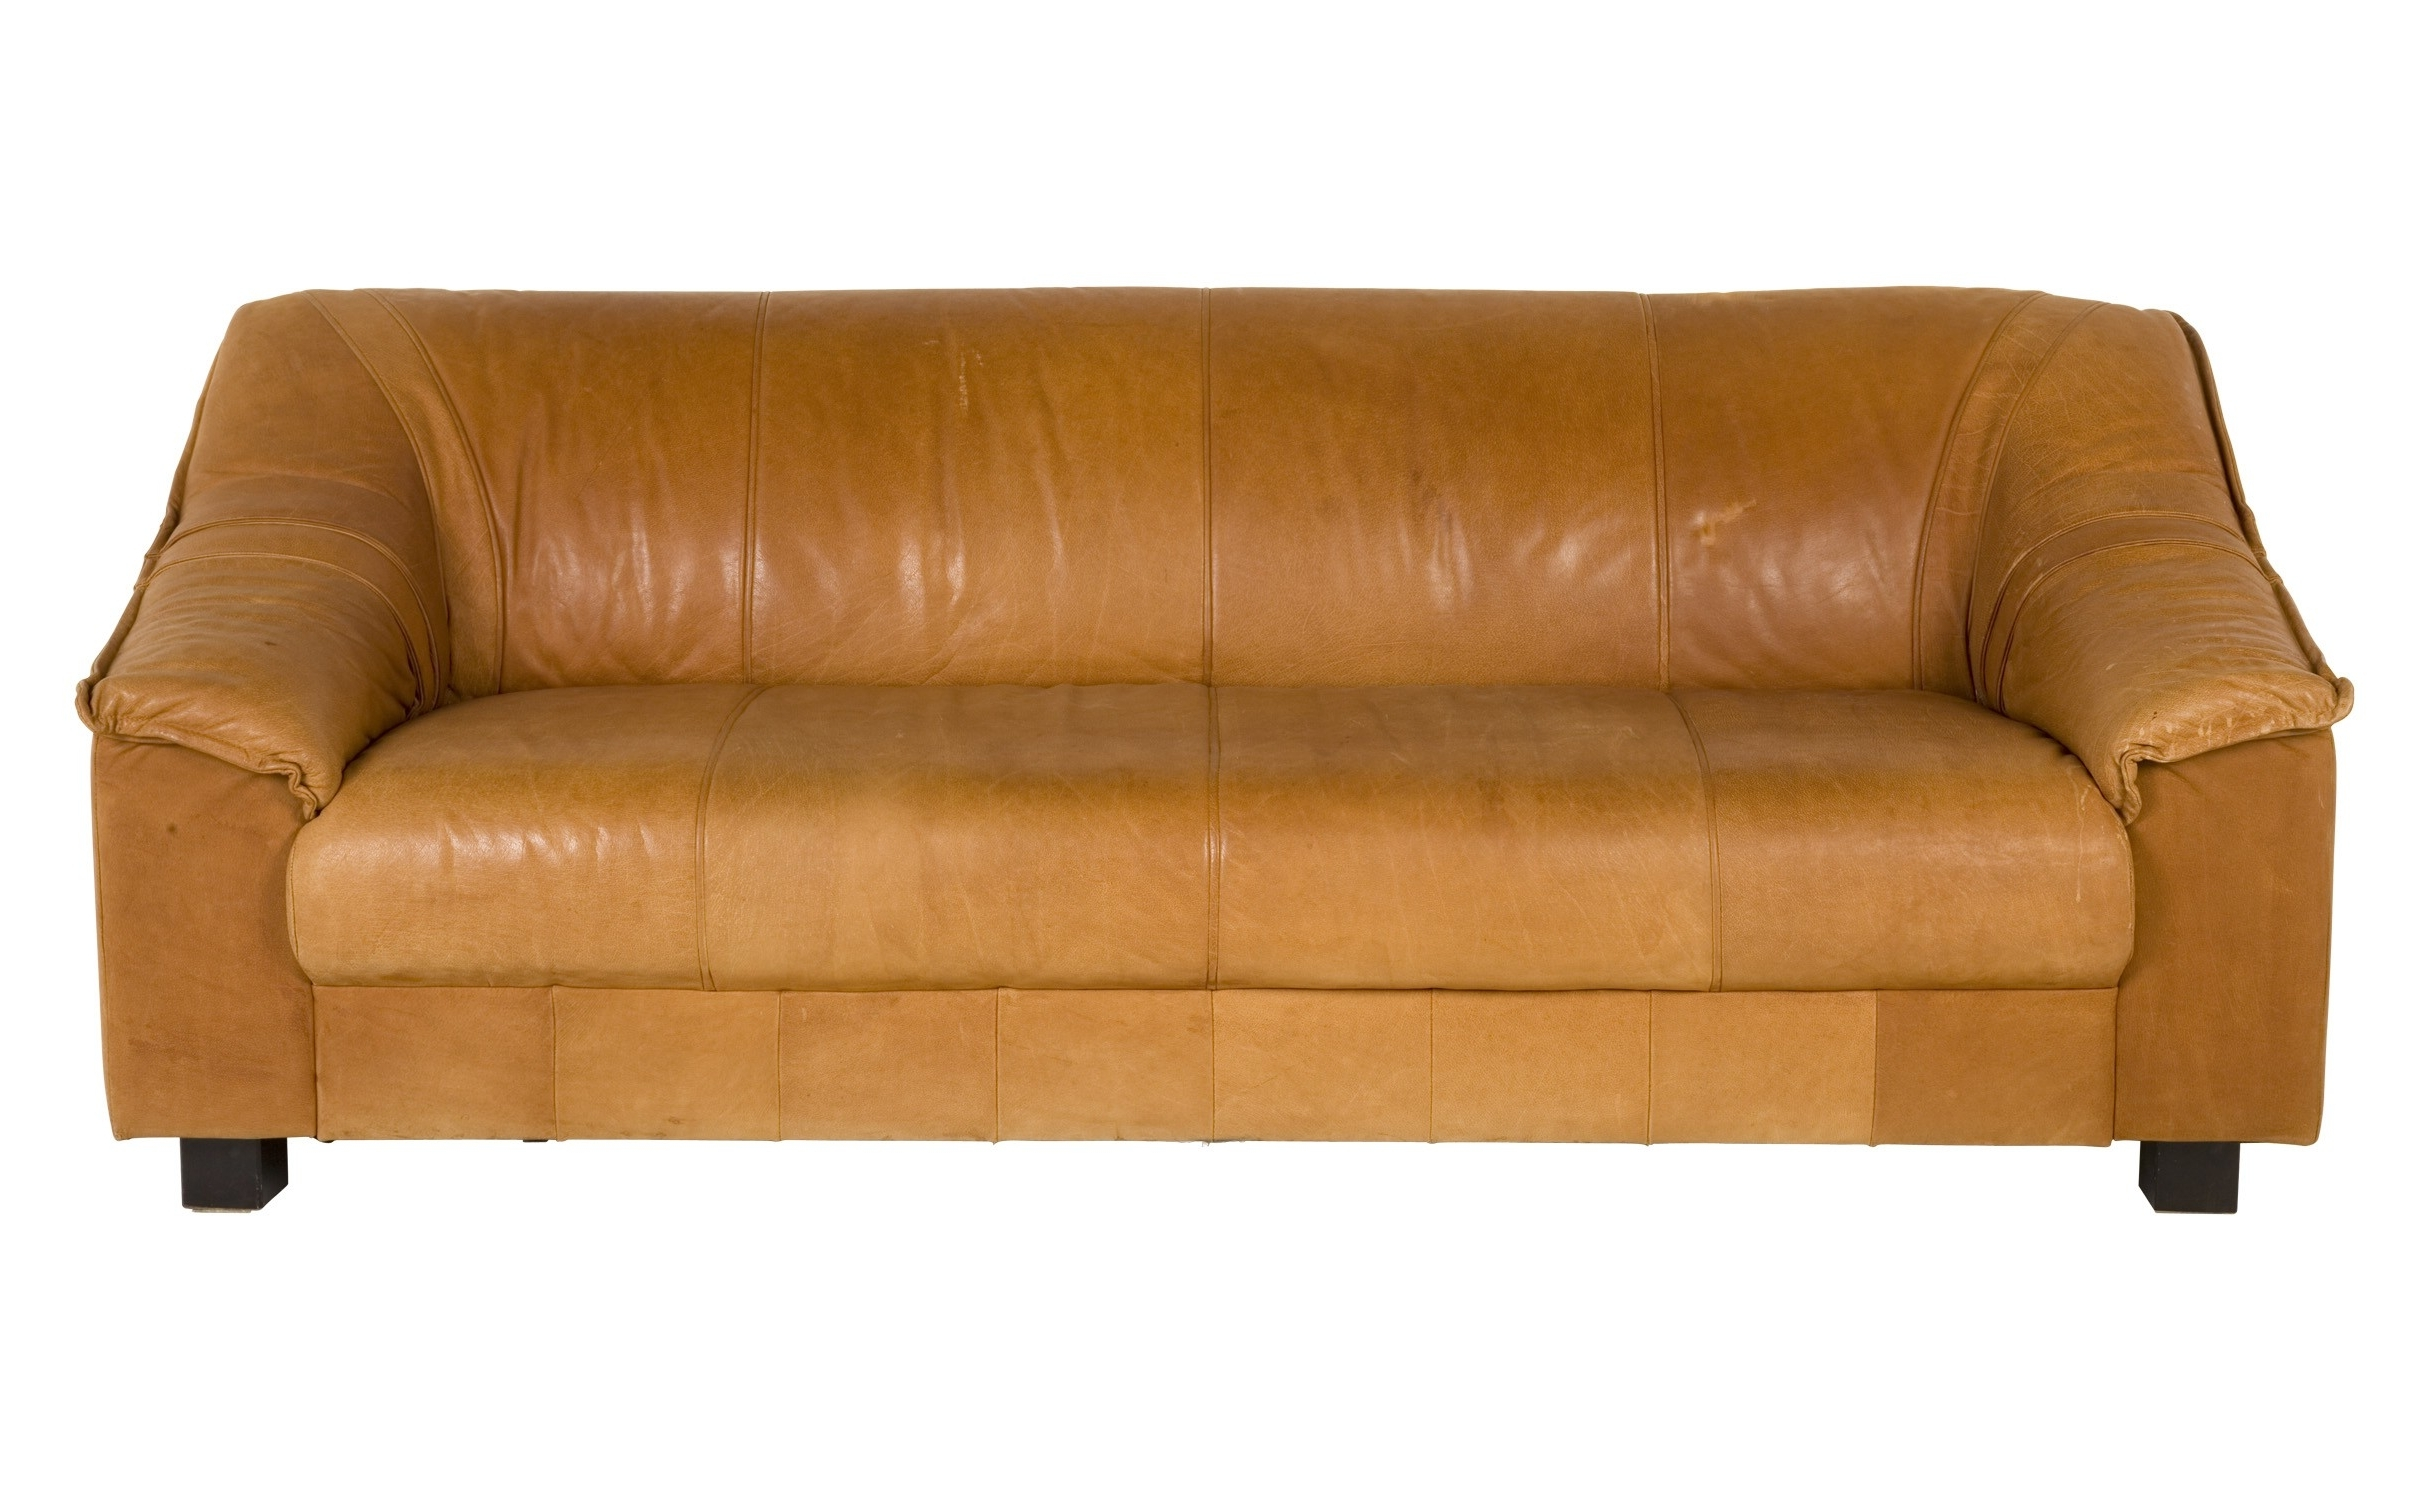 Light Tan Leather Sofas With Regard To Most Recently Released Vintage Tan Leather Sofa (View 6 of 15)